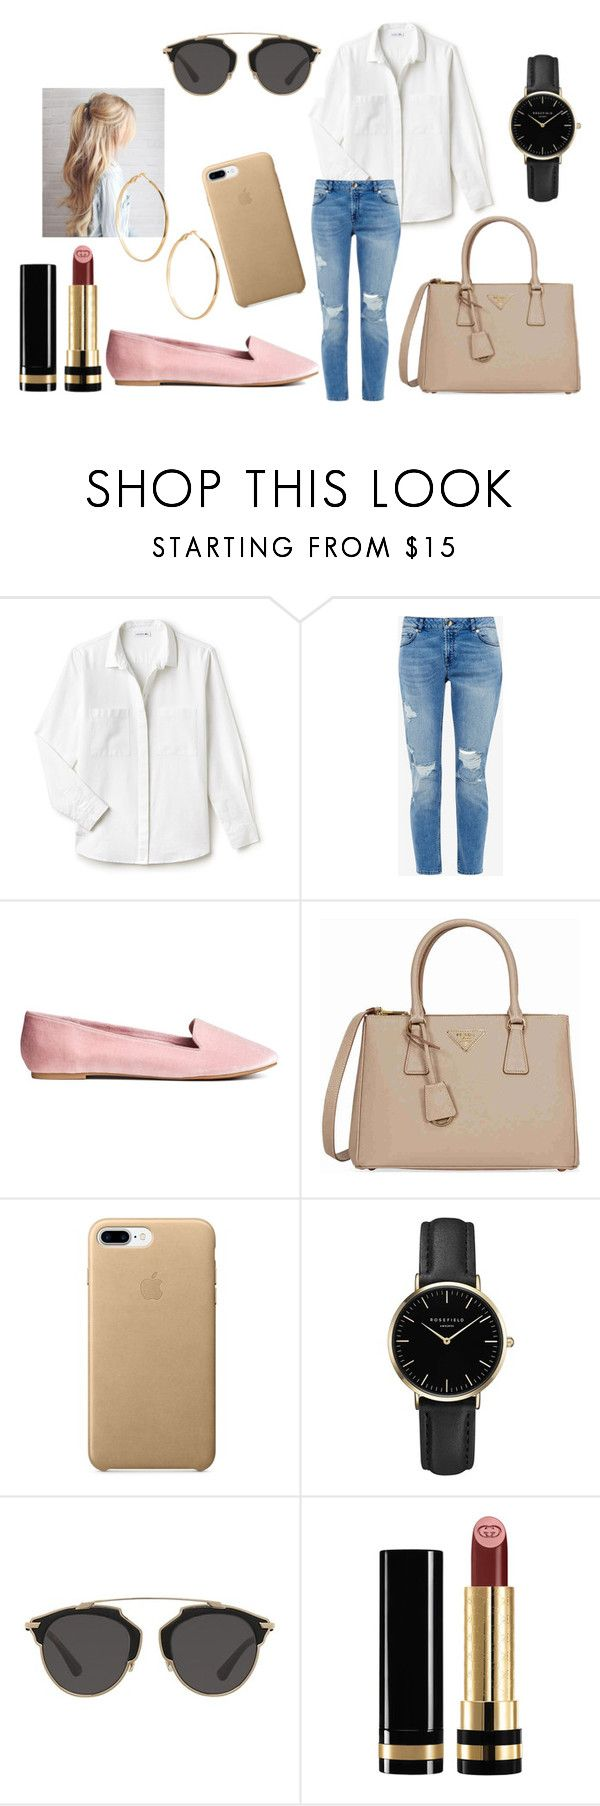 .1 by nicaa on Polyvore featuring moda, Lacoste, Ted Baker, Prada, ROSEFIELD, GUESS by Marciano, Christian Dior and Gucci